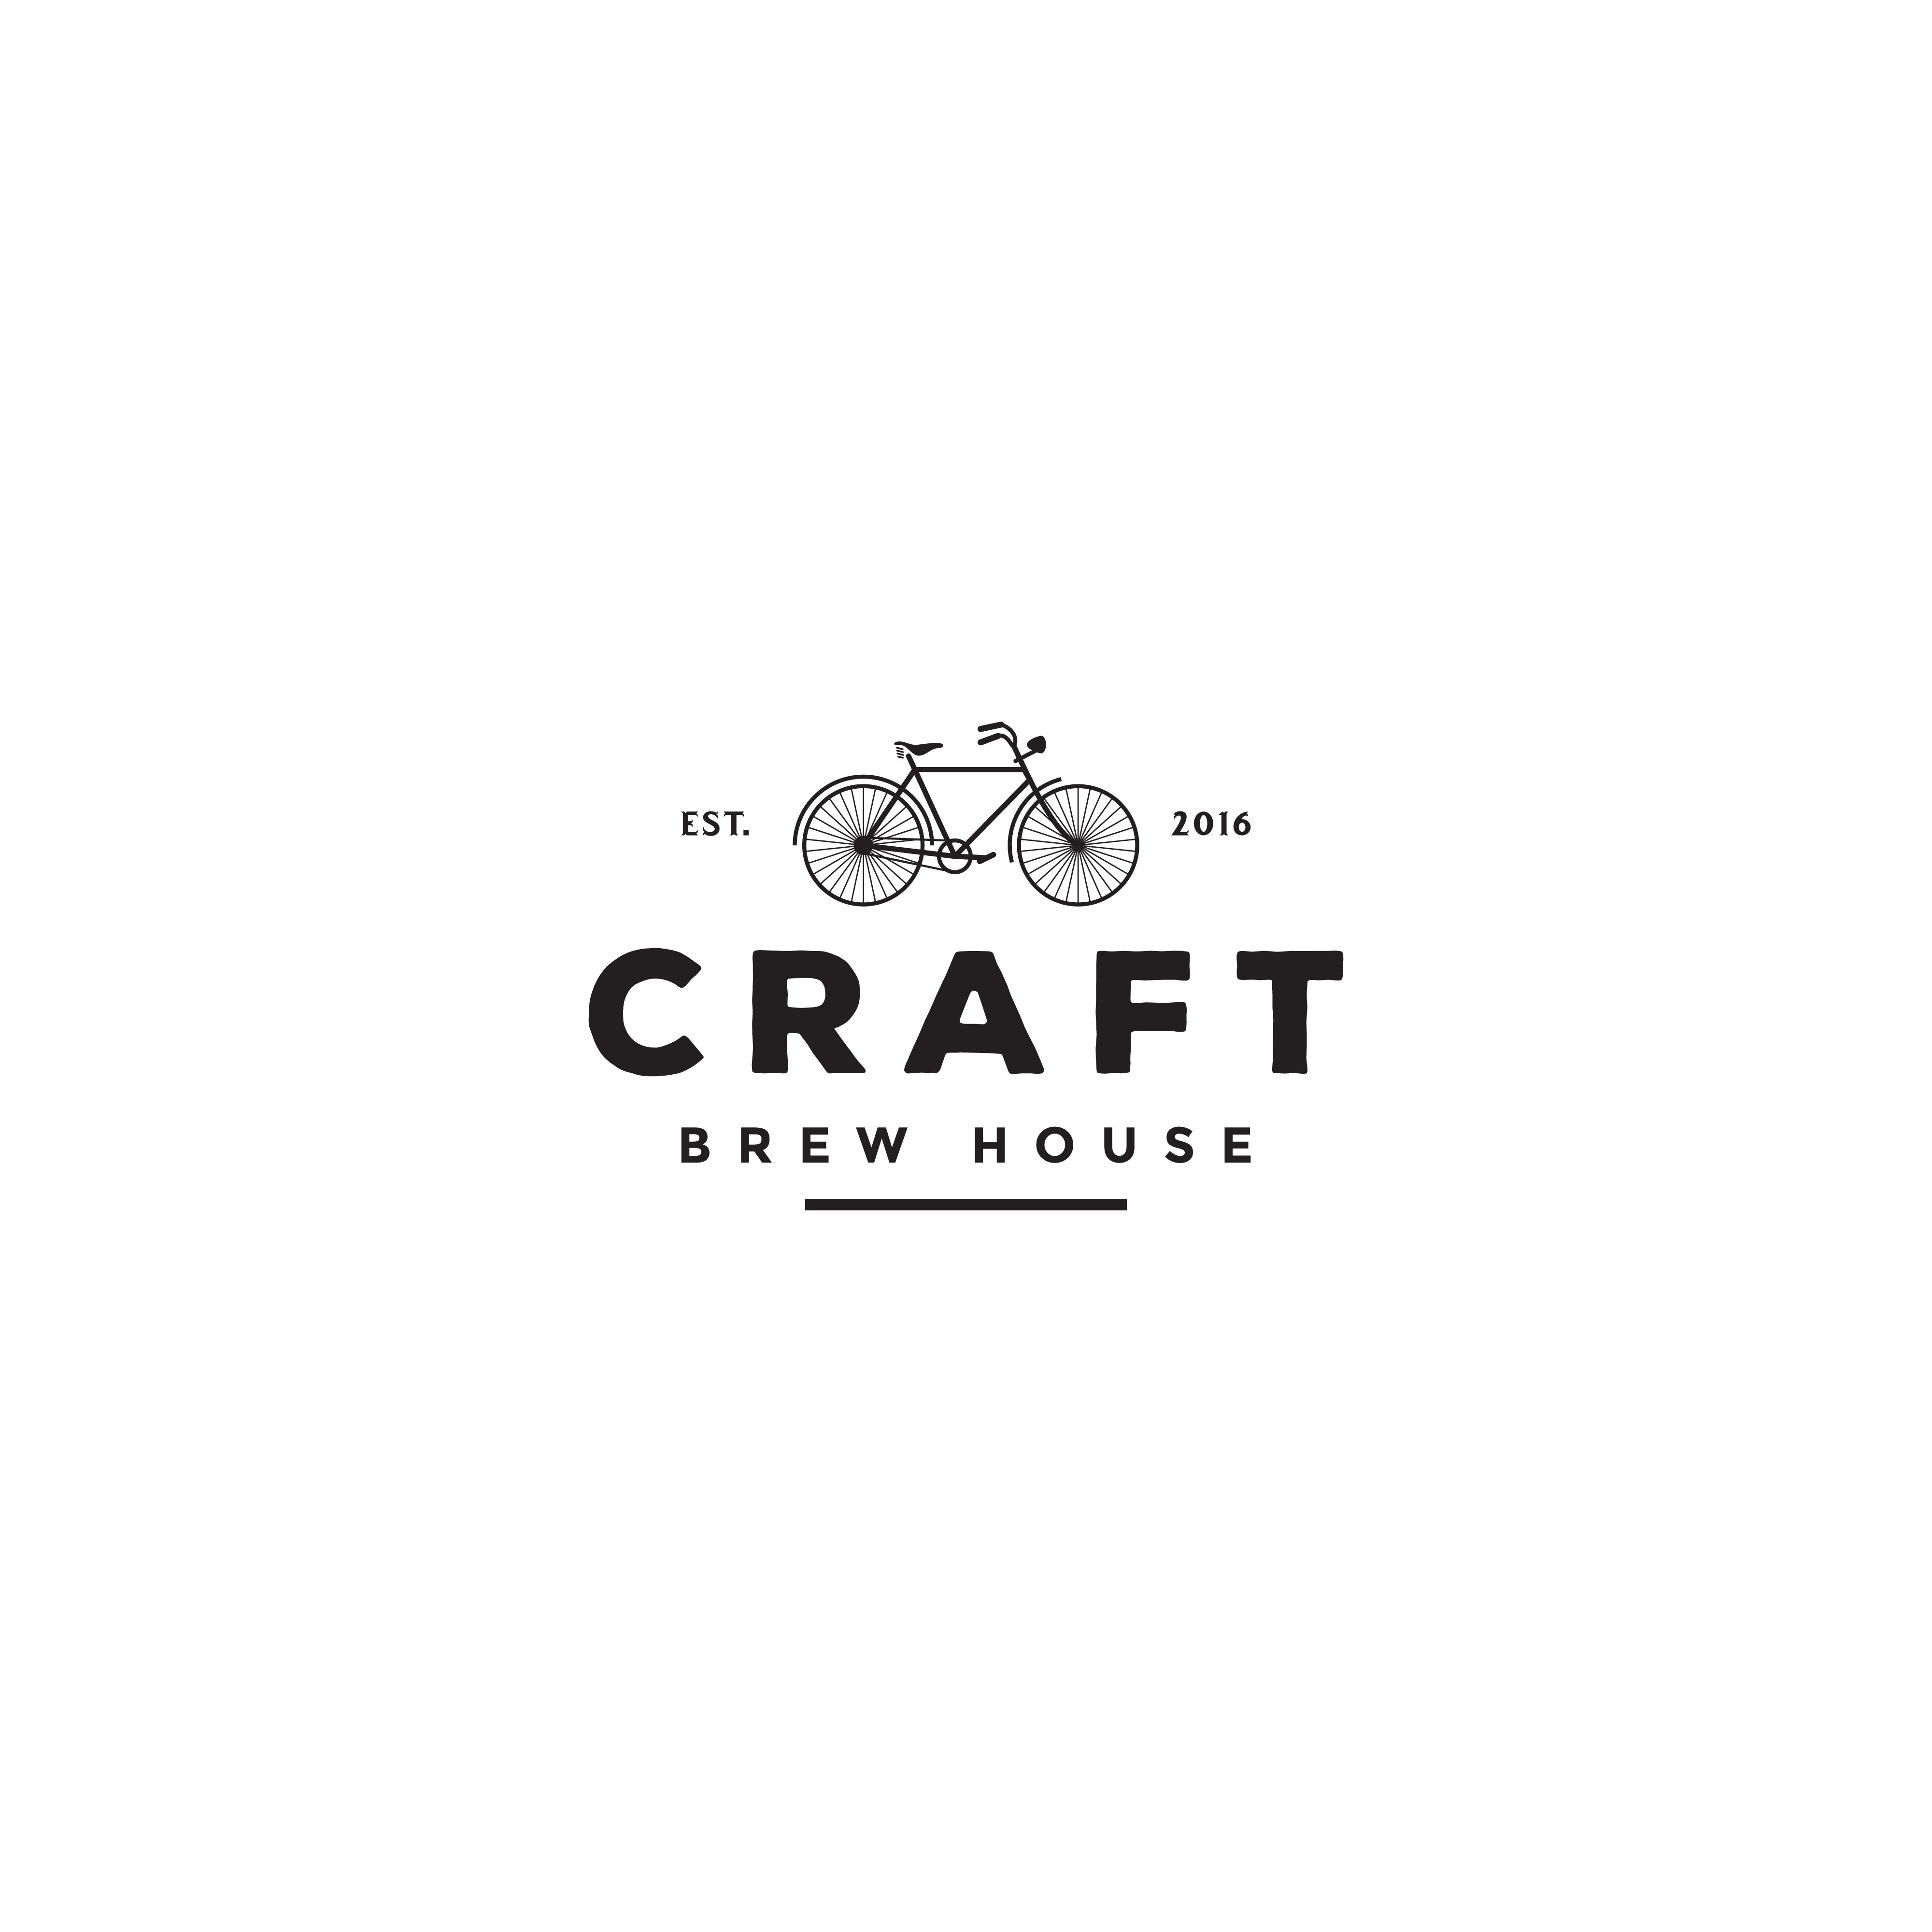 Create a sleek, industrial, vintage logo for our Craft beer and coffee house